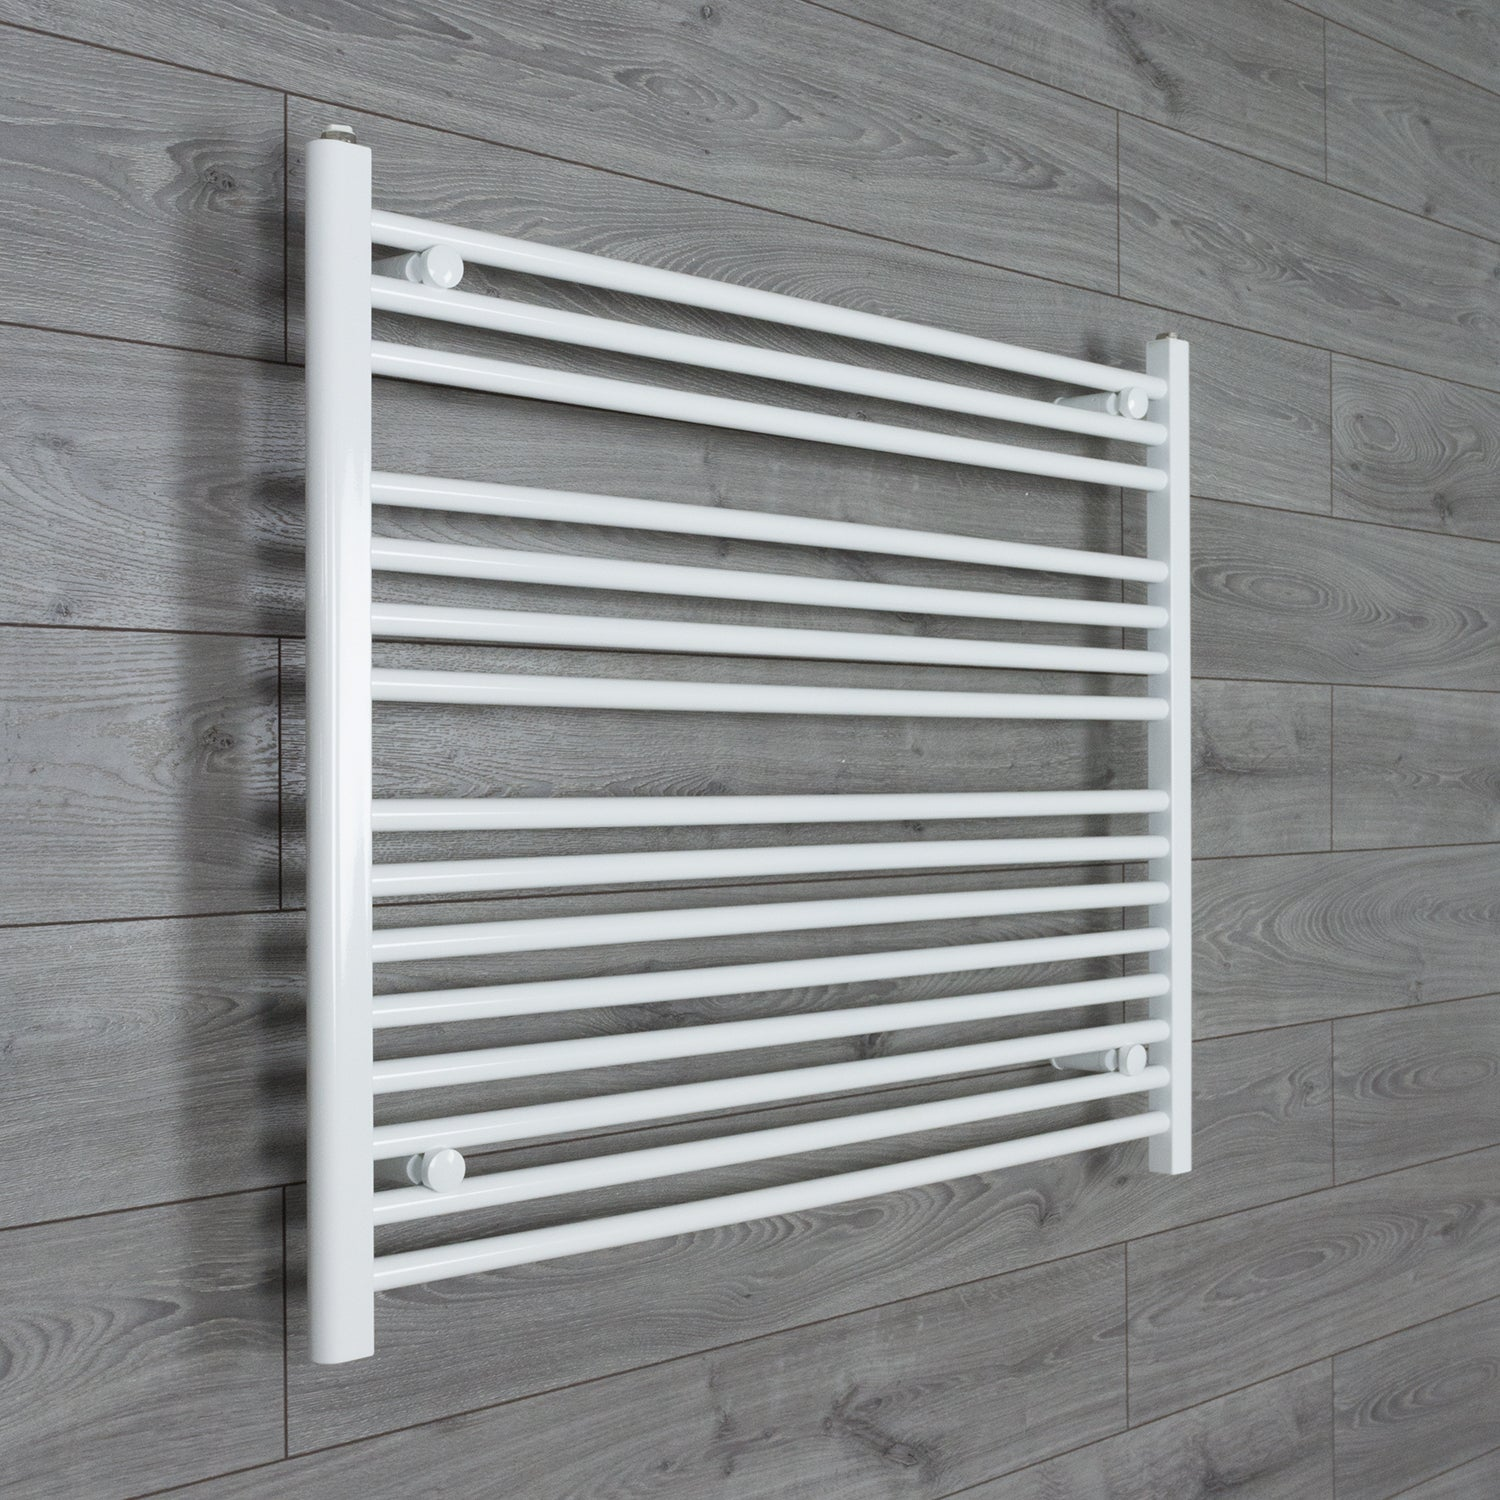 950mm Wide 800mm High White Towel Rail Radiator